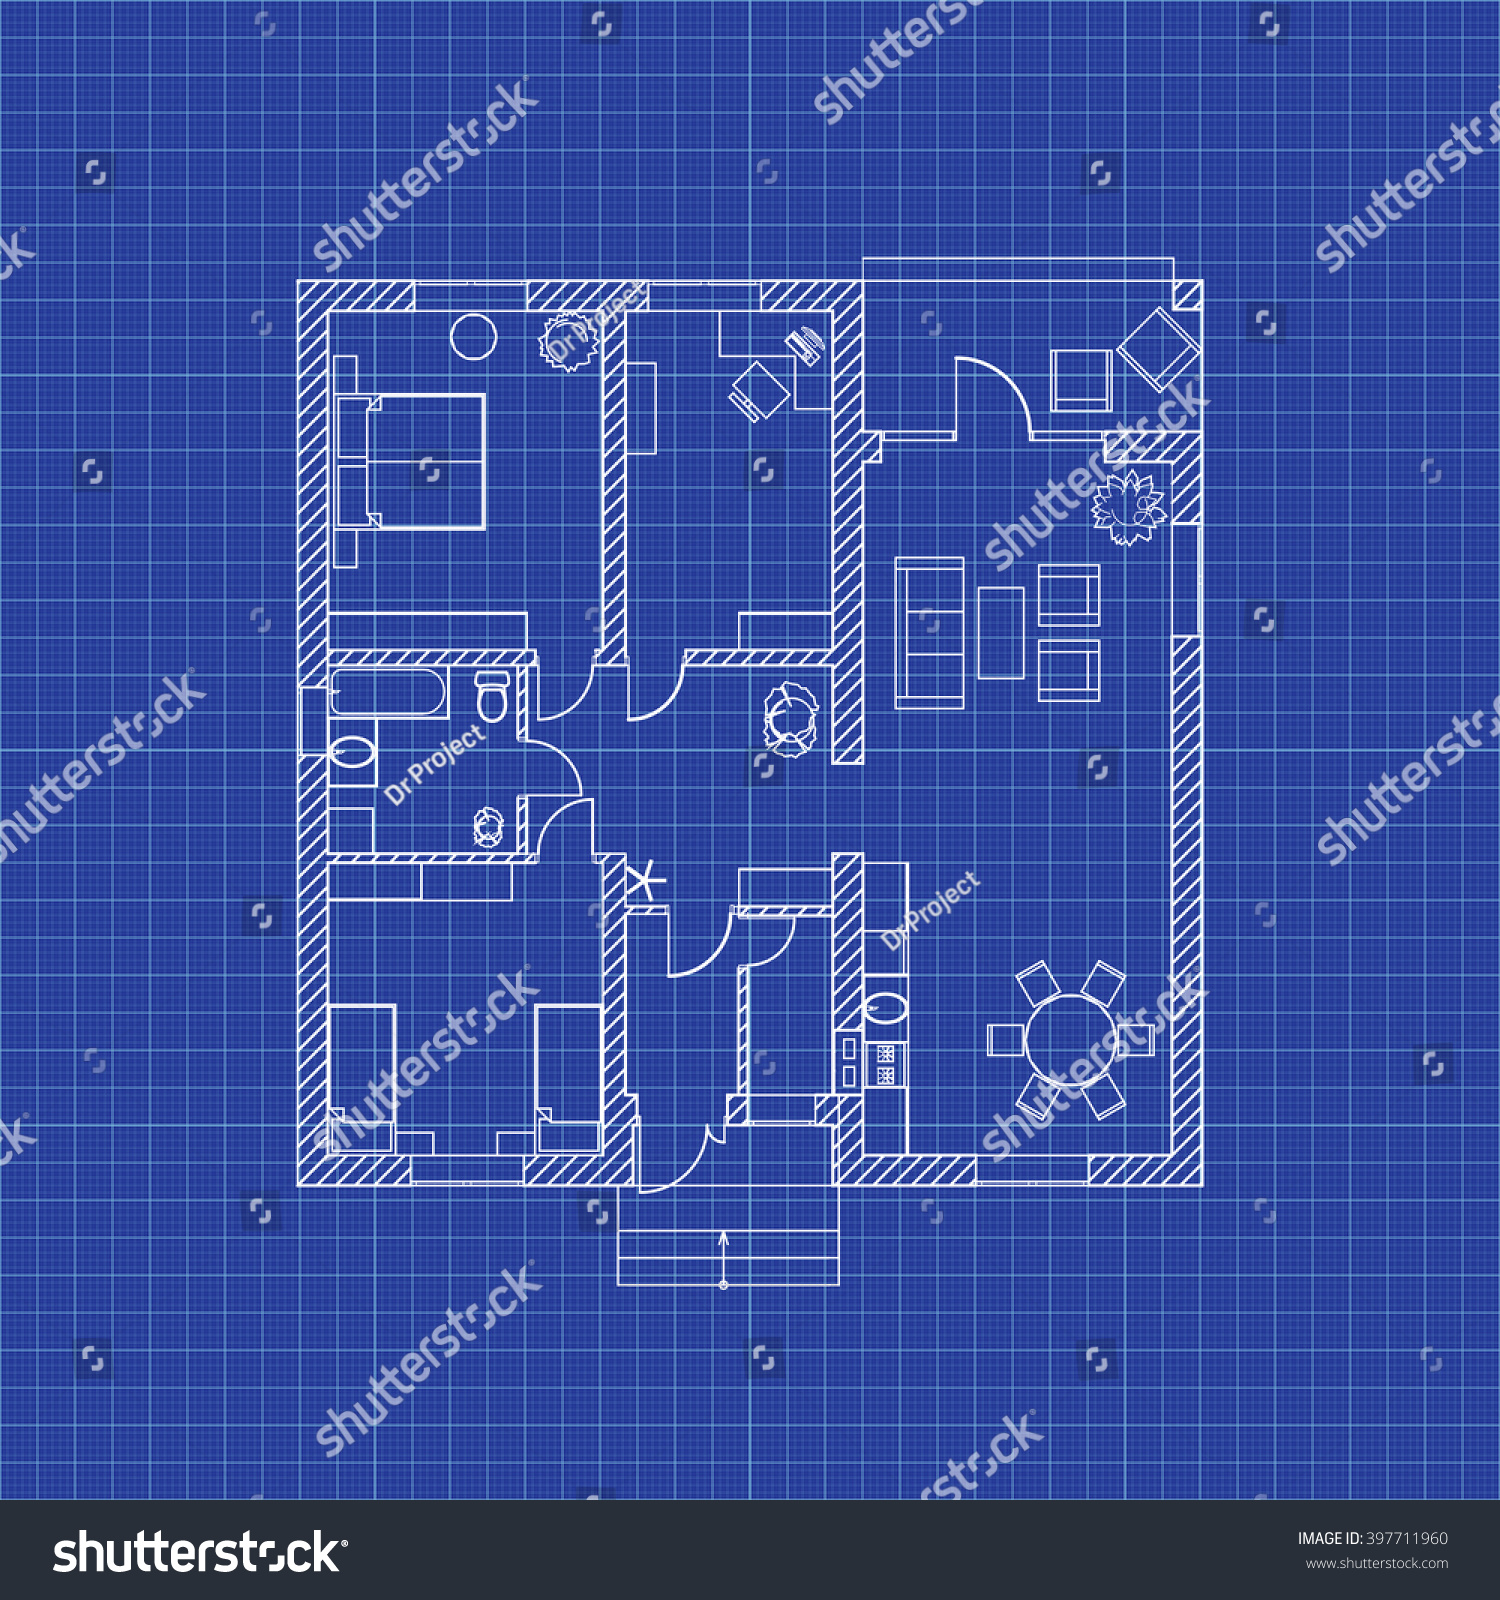 floor plan blueprint modern house floor plan modern partment on graph stock vector 397711960